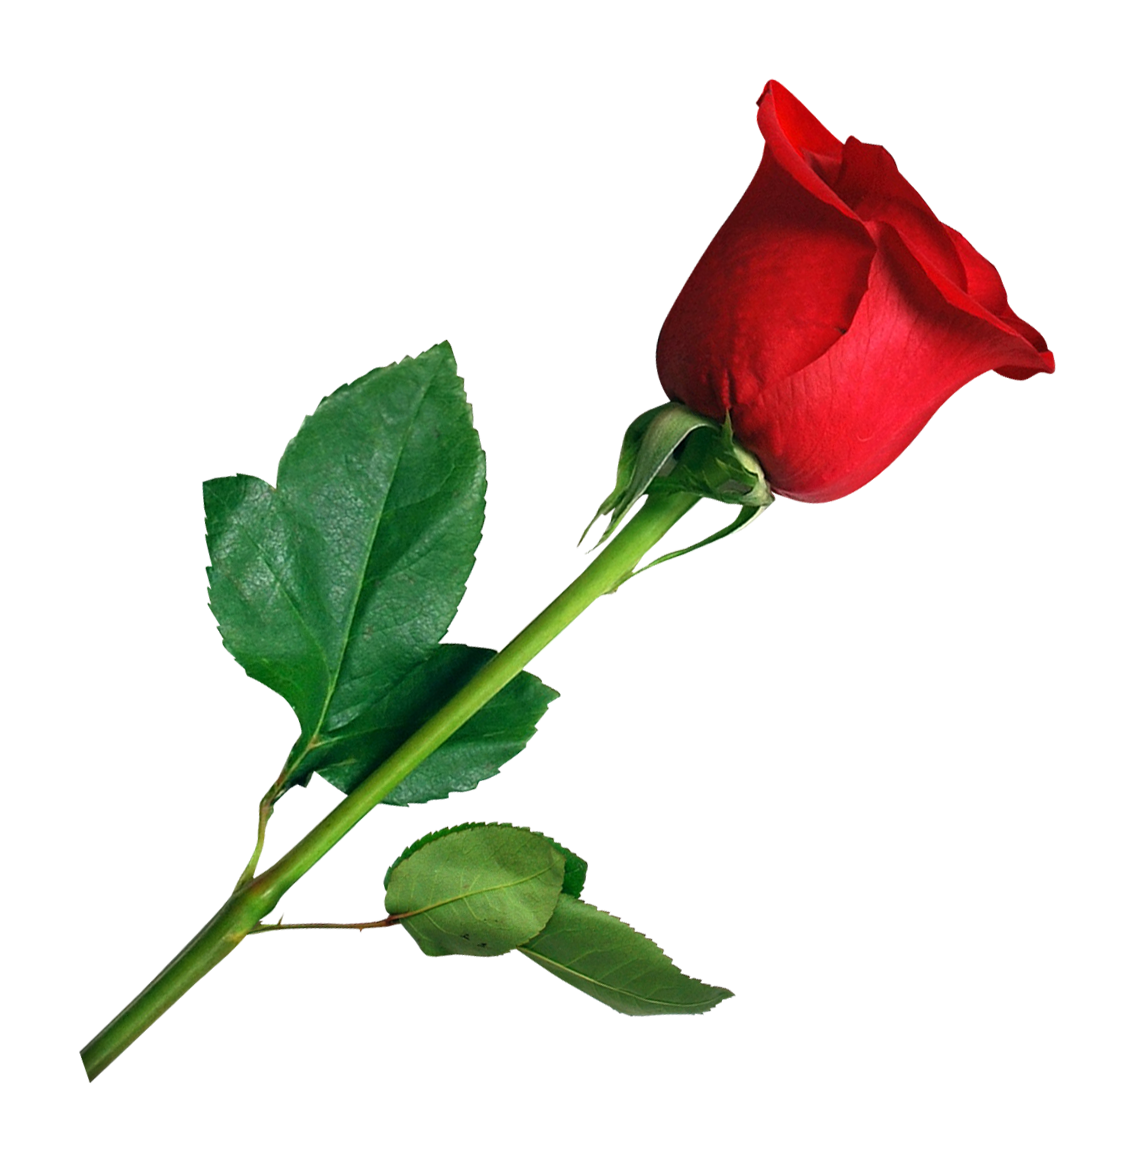 Rose Png Image Purepng Free Transparent Cc0 Png Image Library